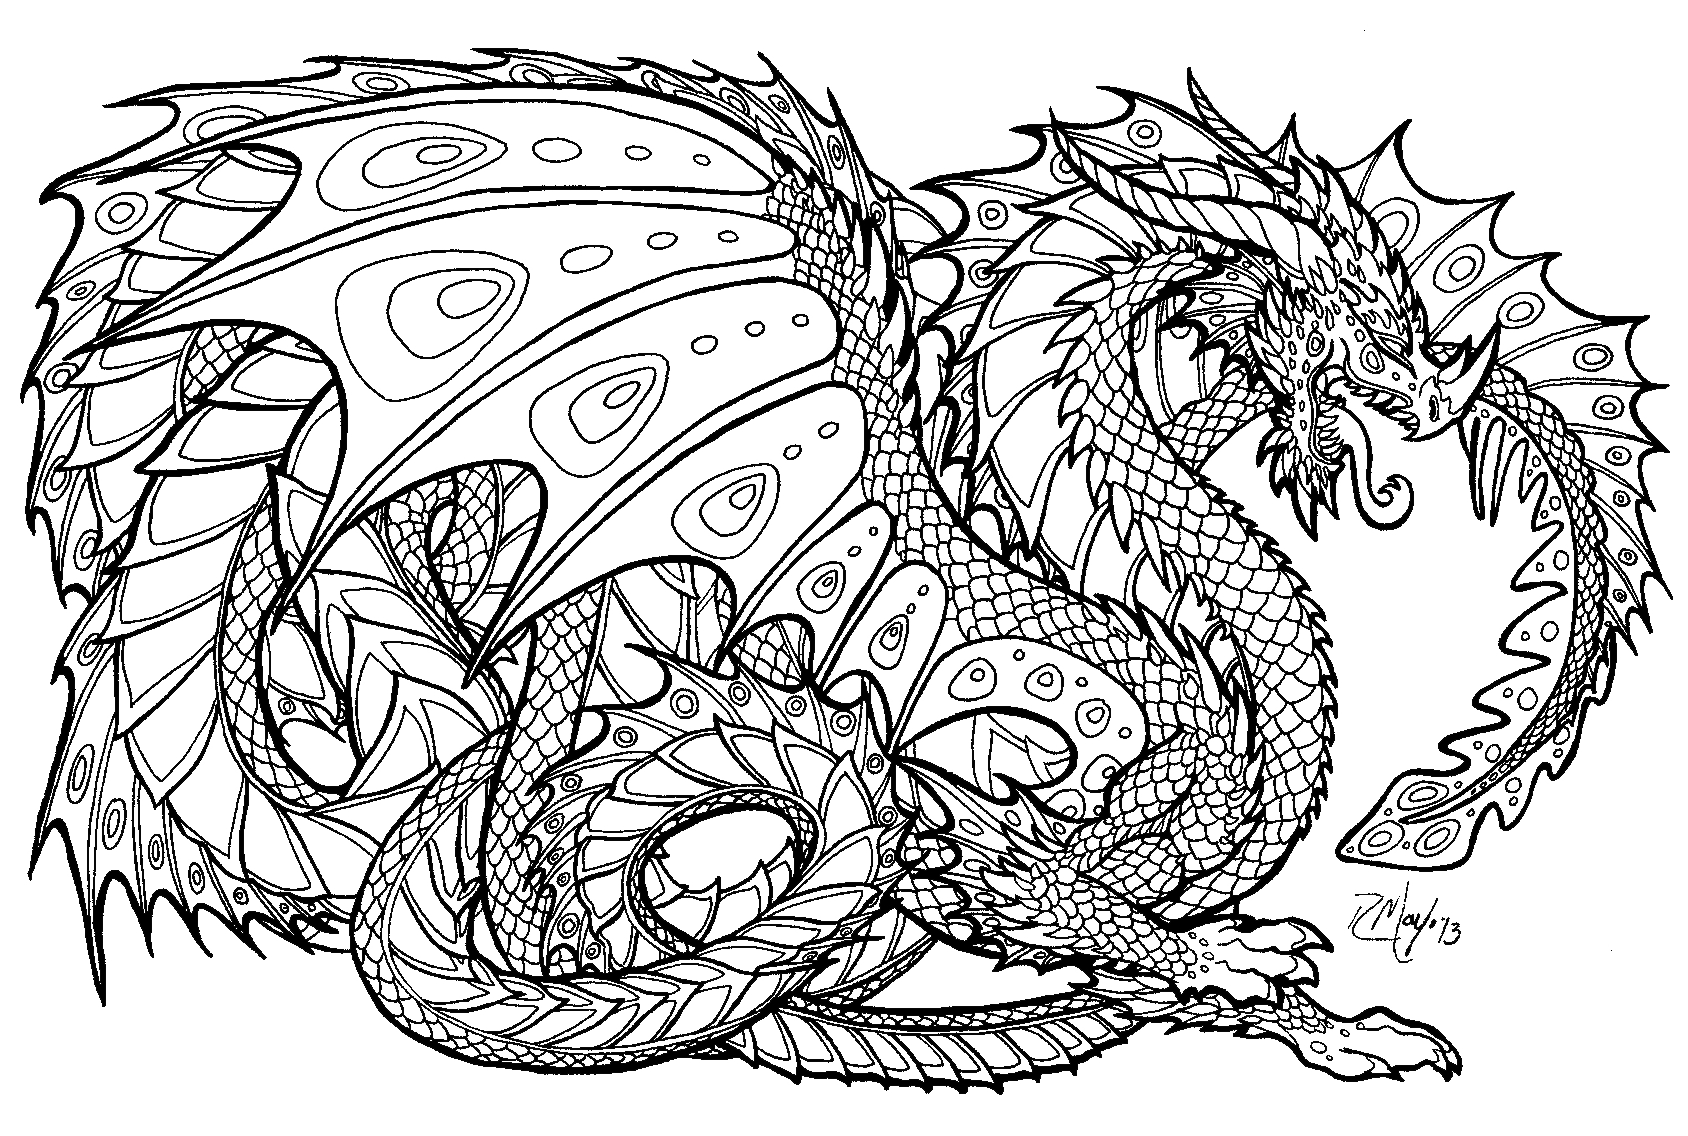 Free Intricate Coloring Pages Free Coloring Pages Download | Xsibe ...